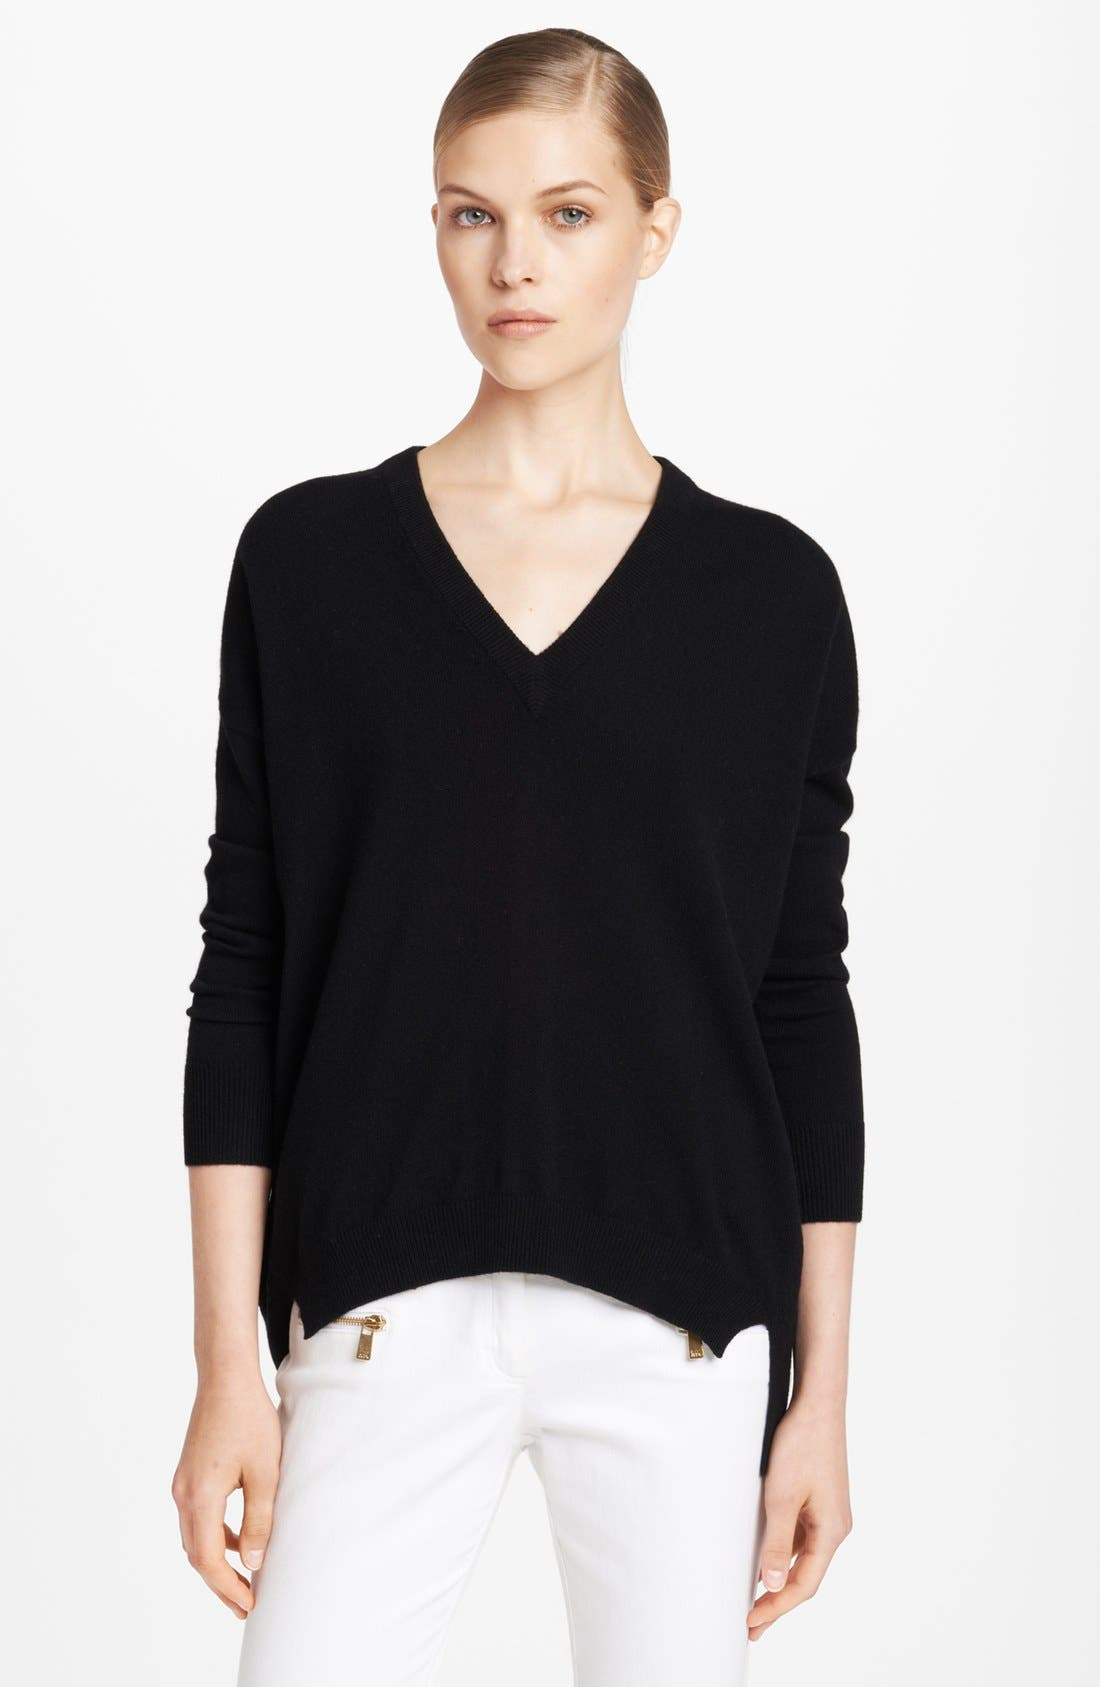 Alternate Image 1 Selected - Michael Kors Cashmere Knit Tunic